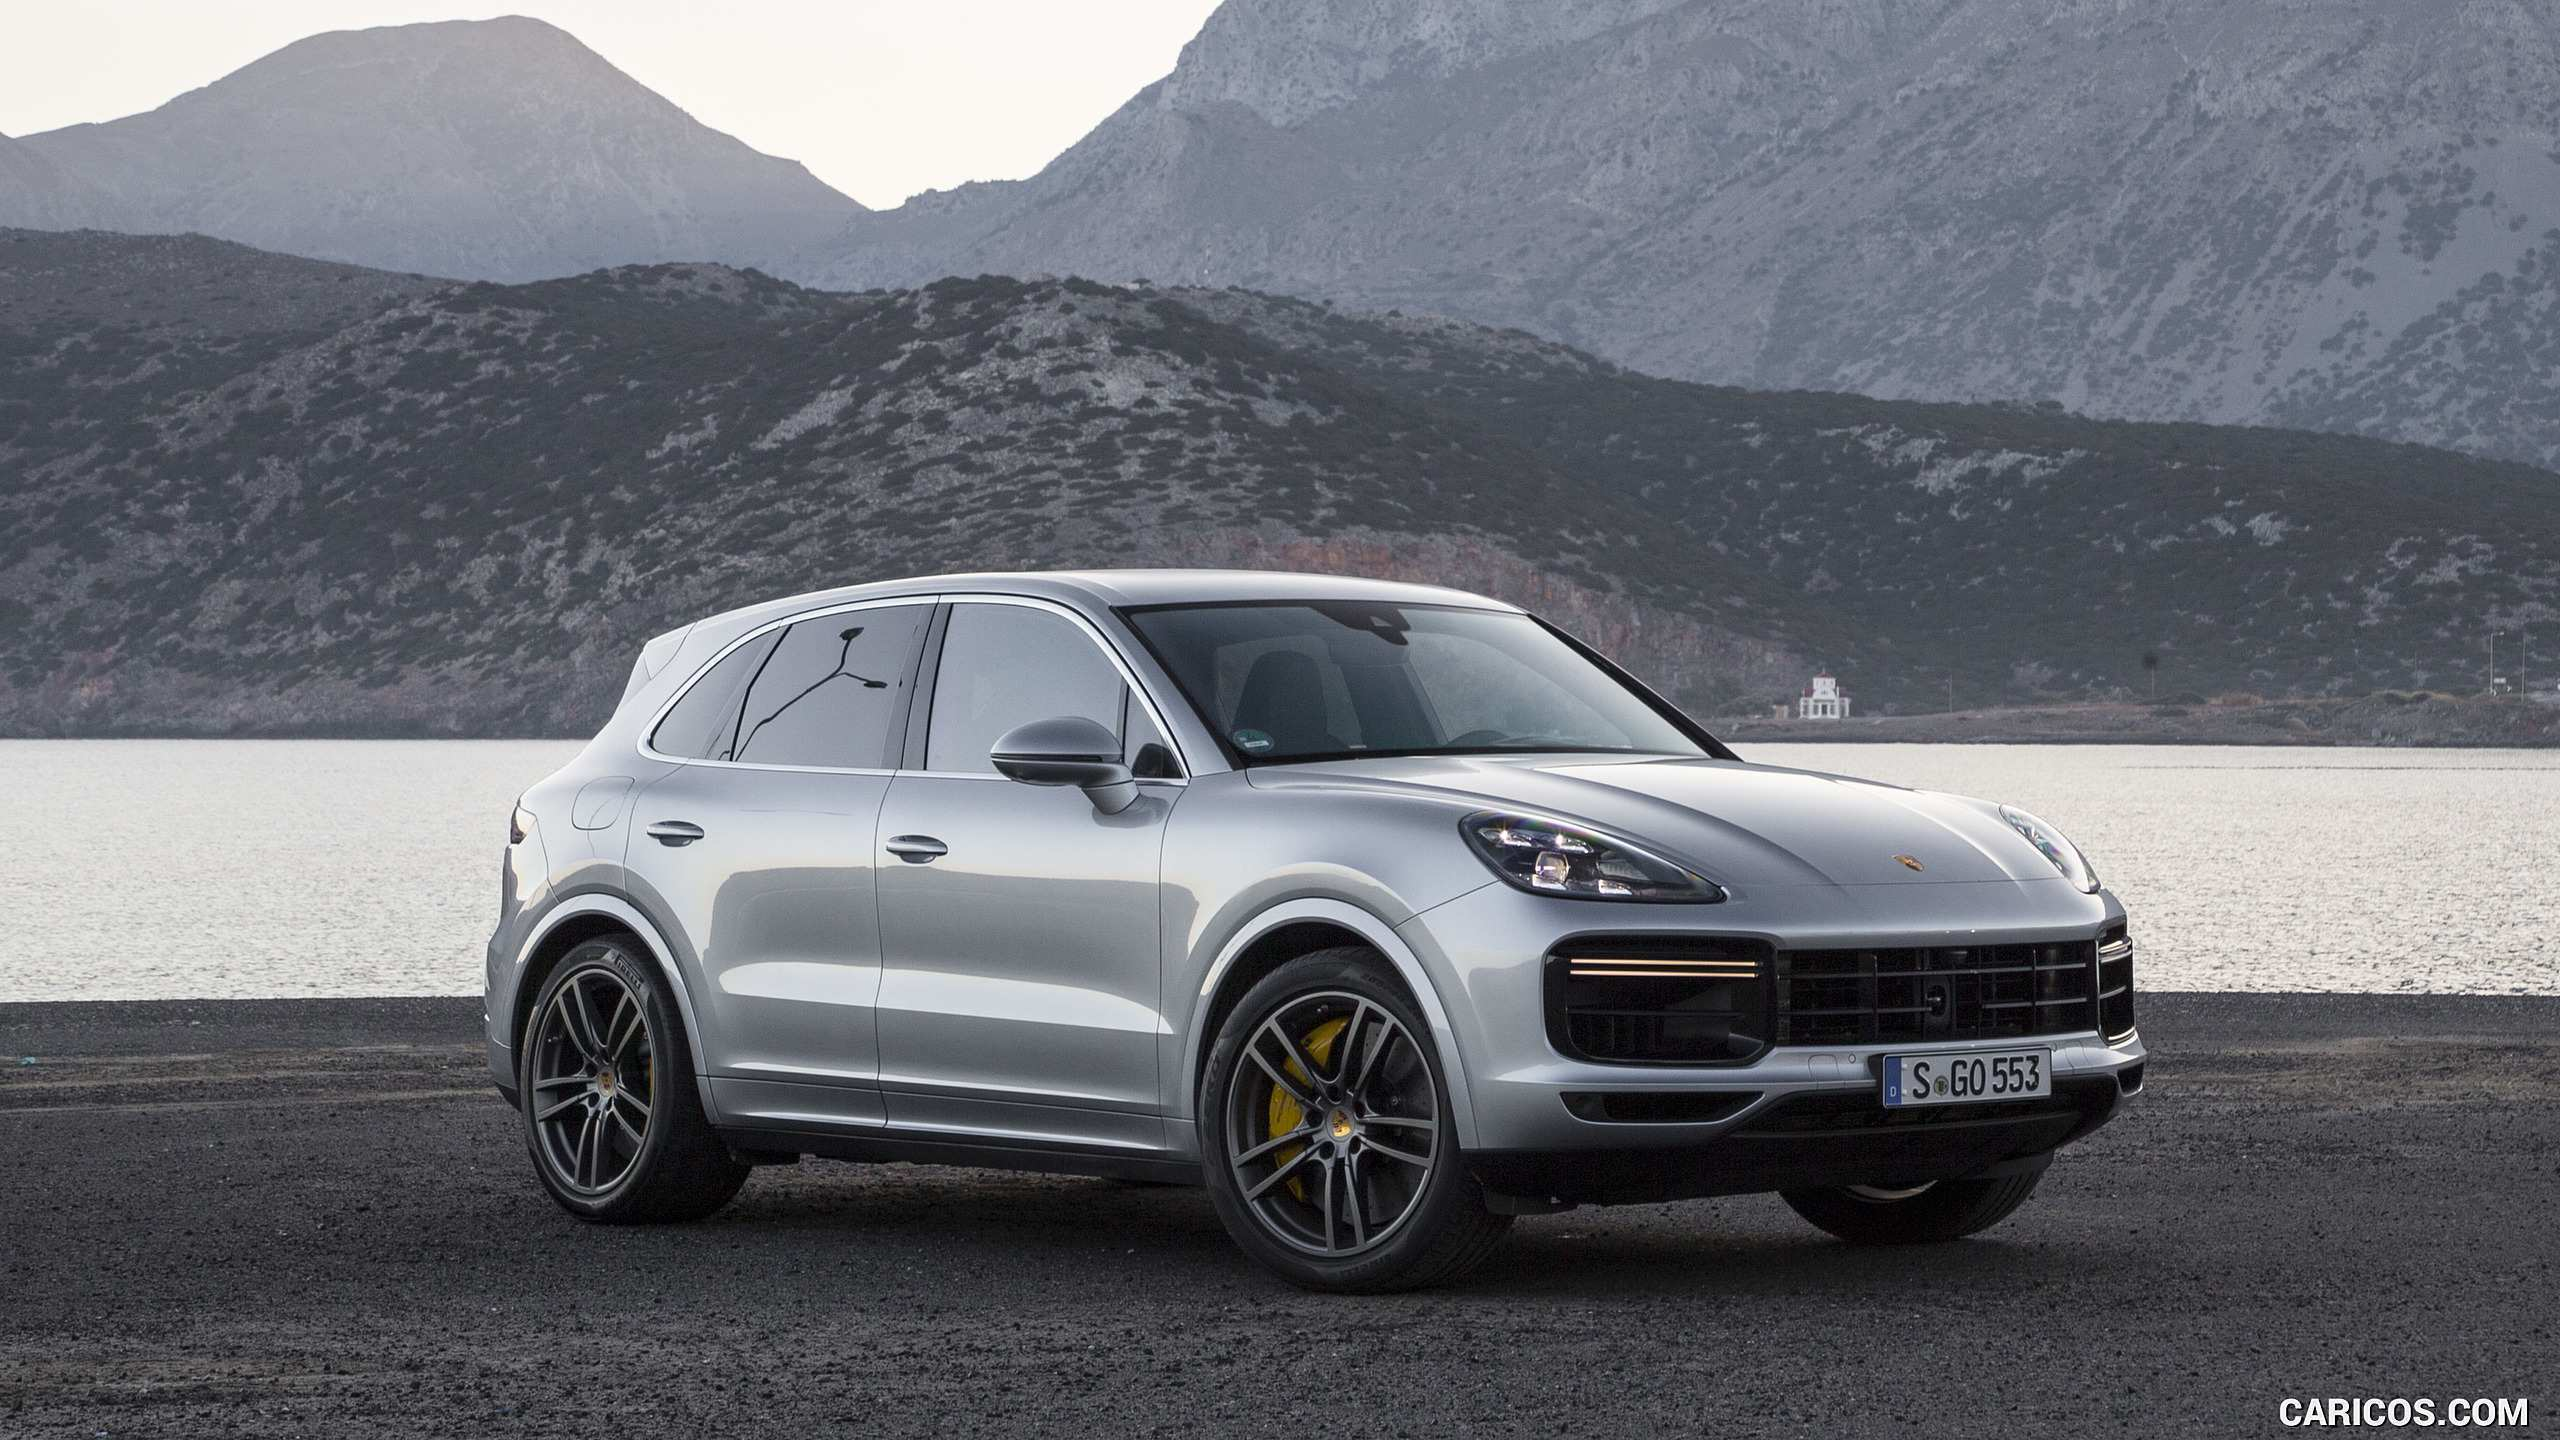 94 Gallery of 2019 Porsche Cayenne Video Release Date with 2019 Porsche Cayenne Video